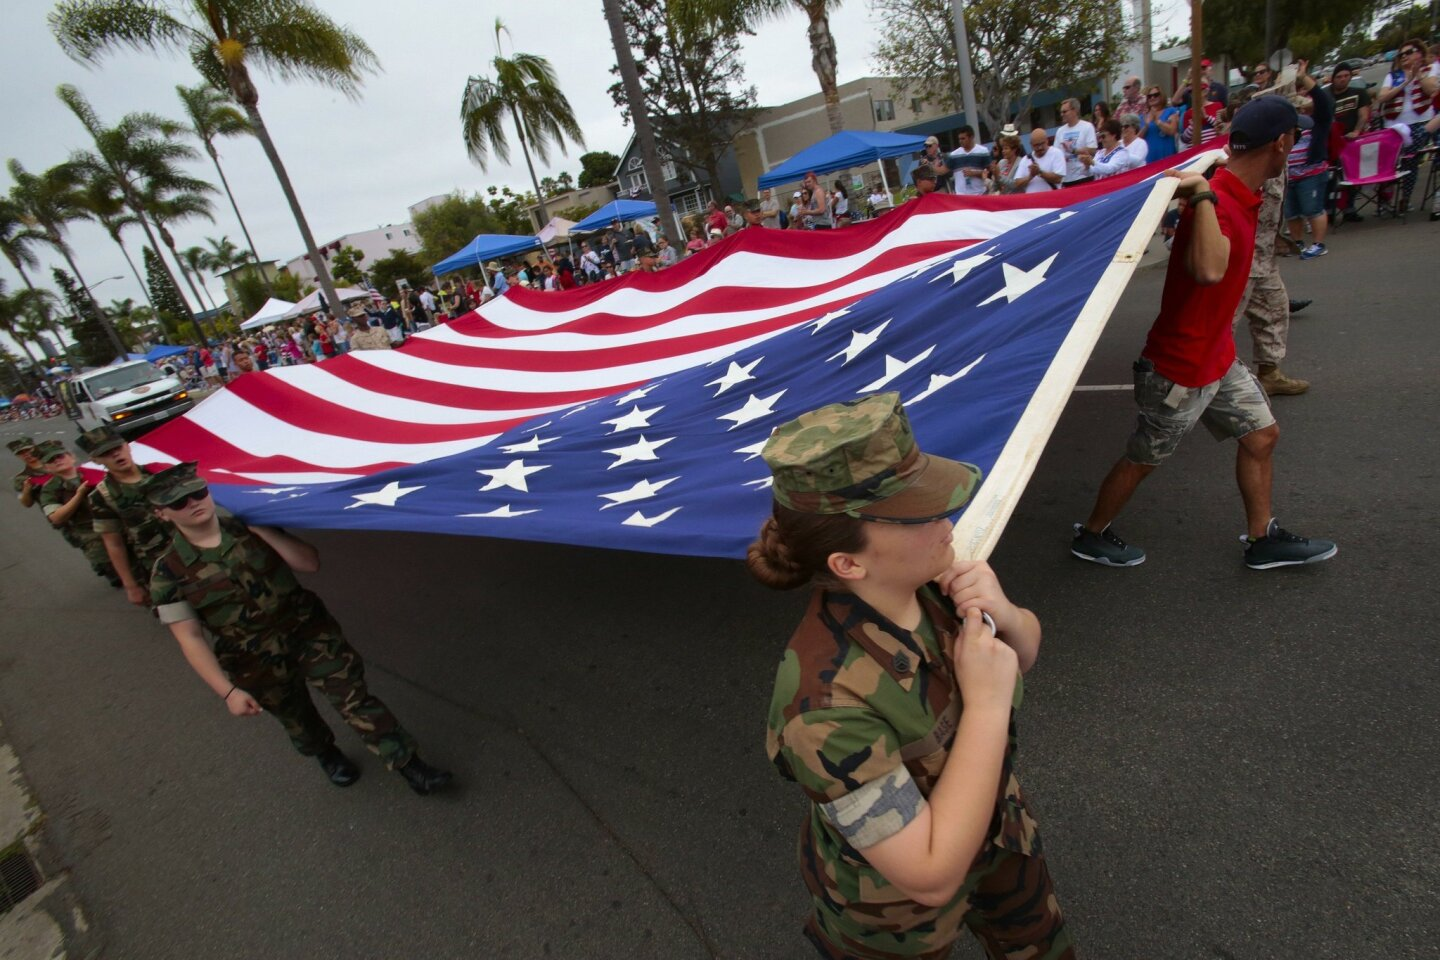 Independence Day events throughout the county